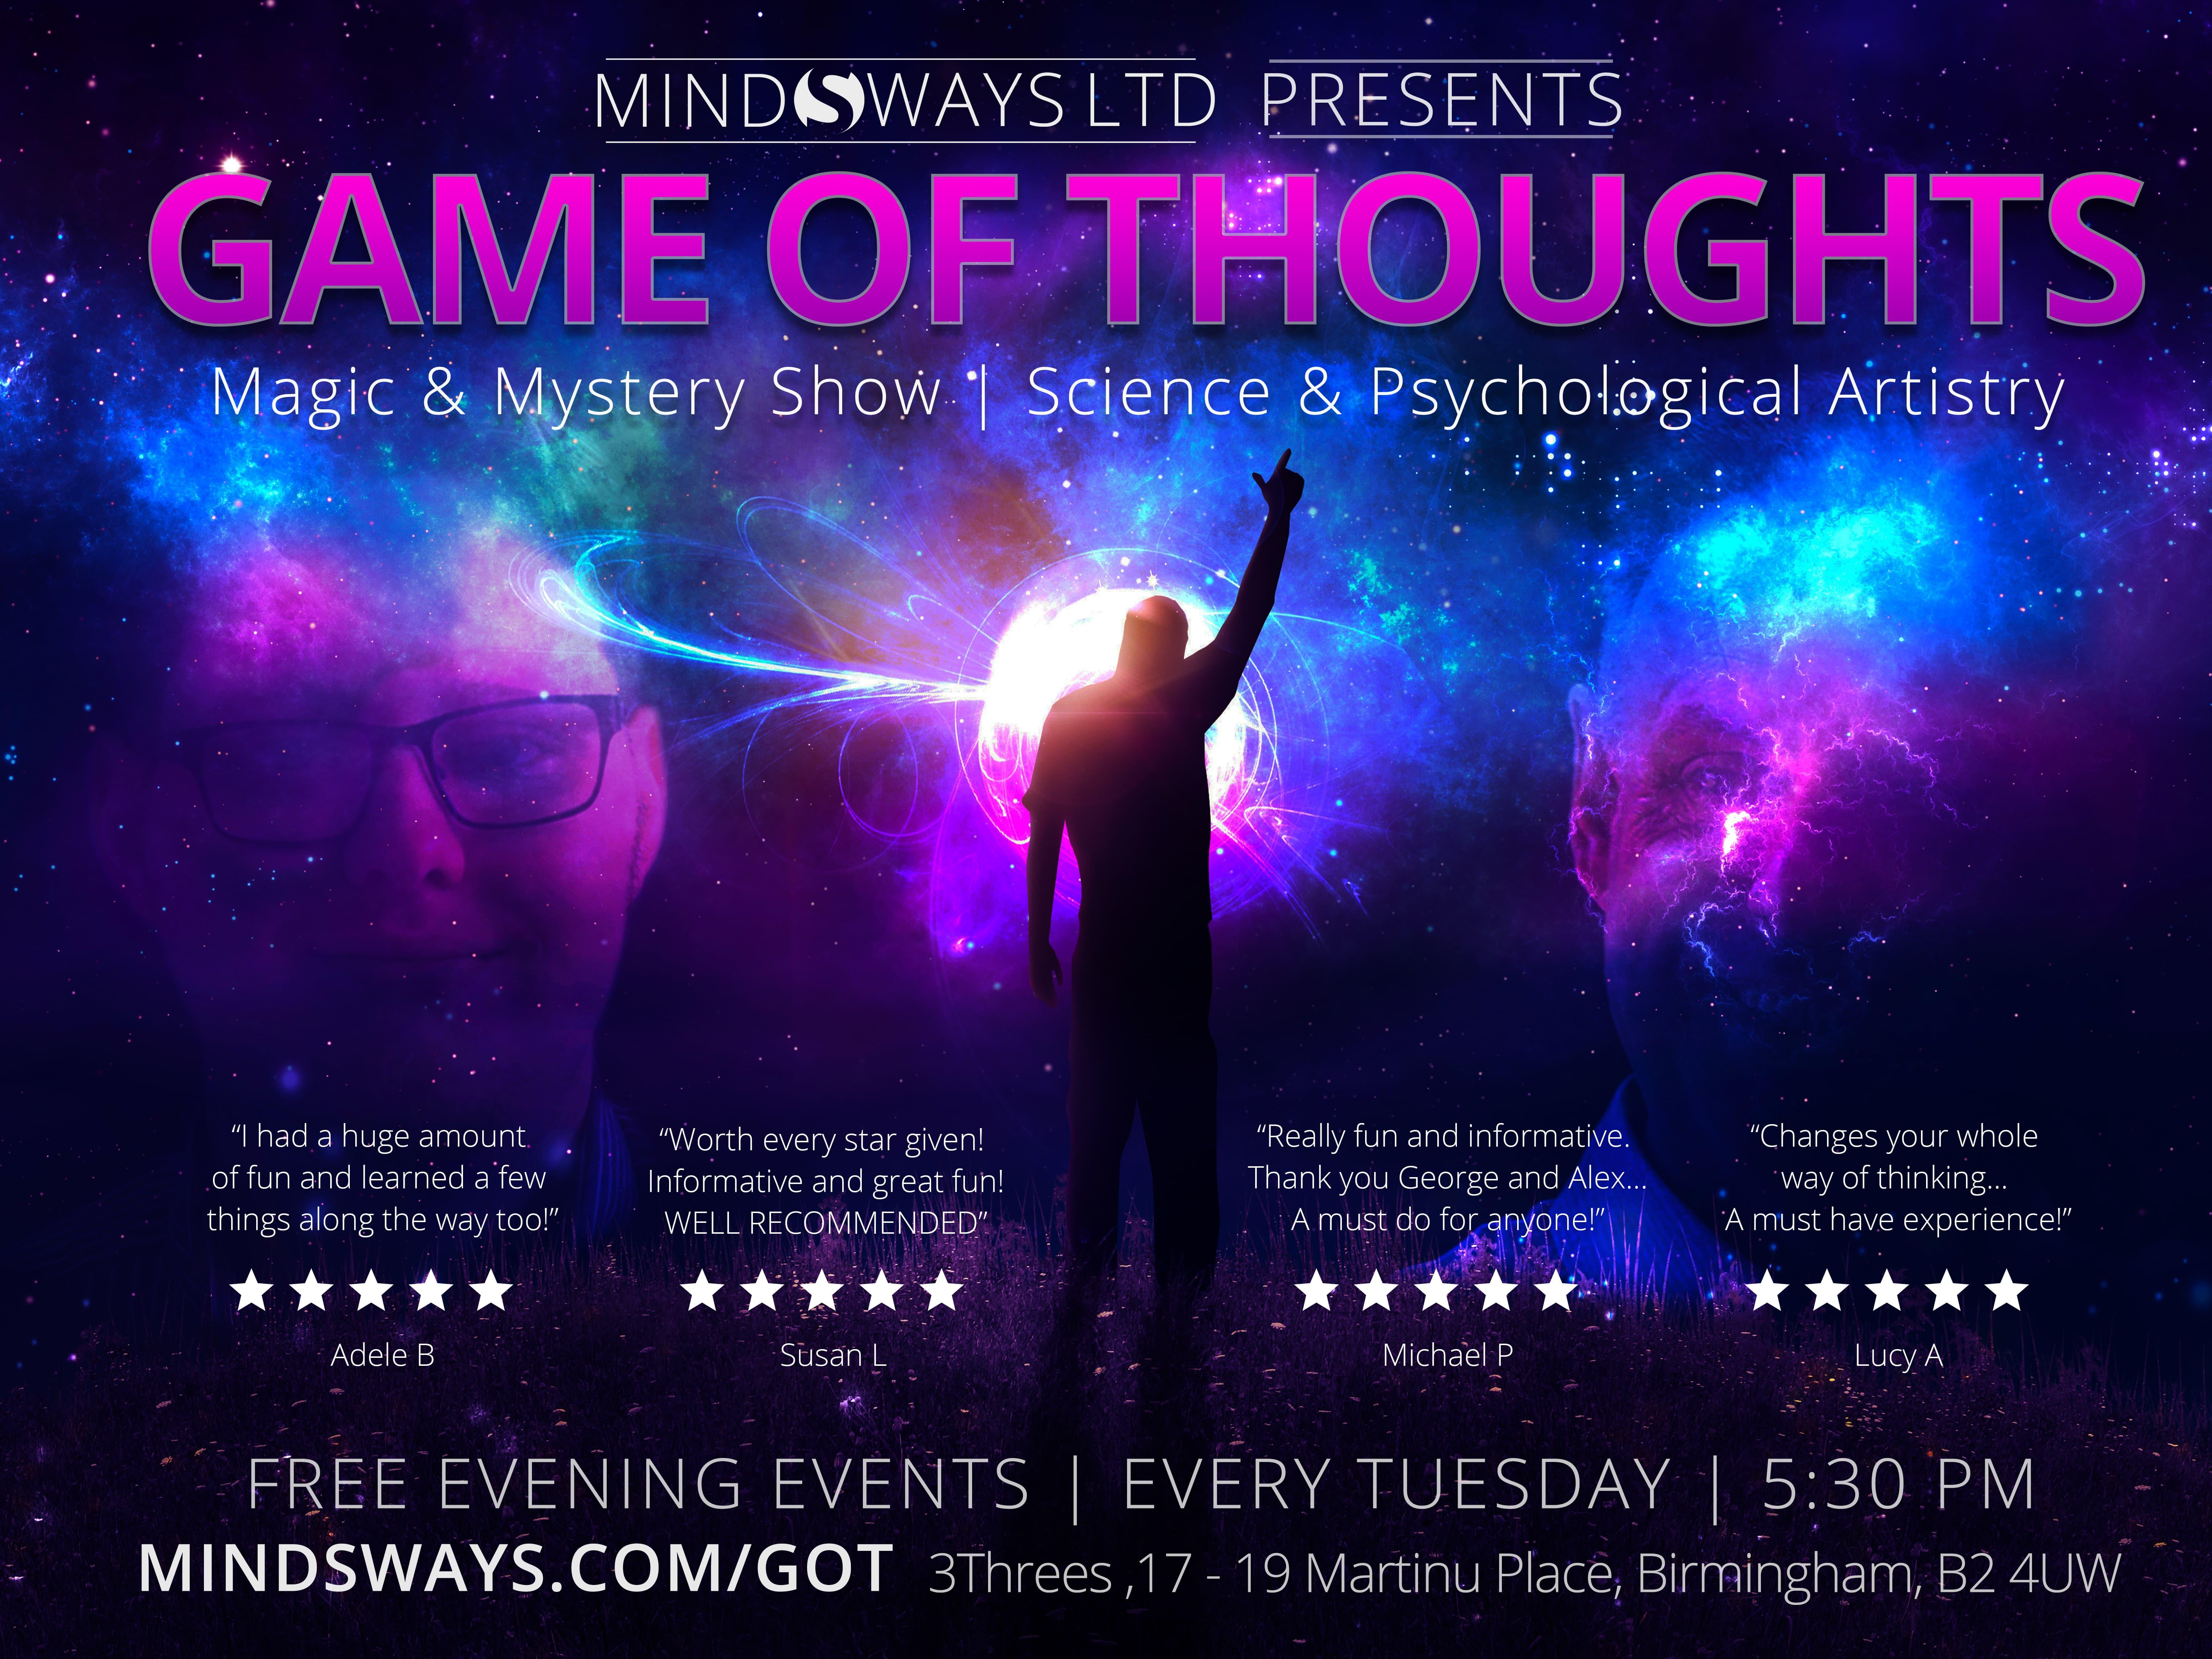 Game of Thoughts - Free Evening Event